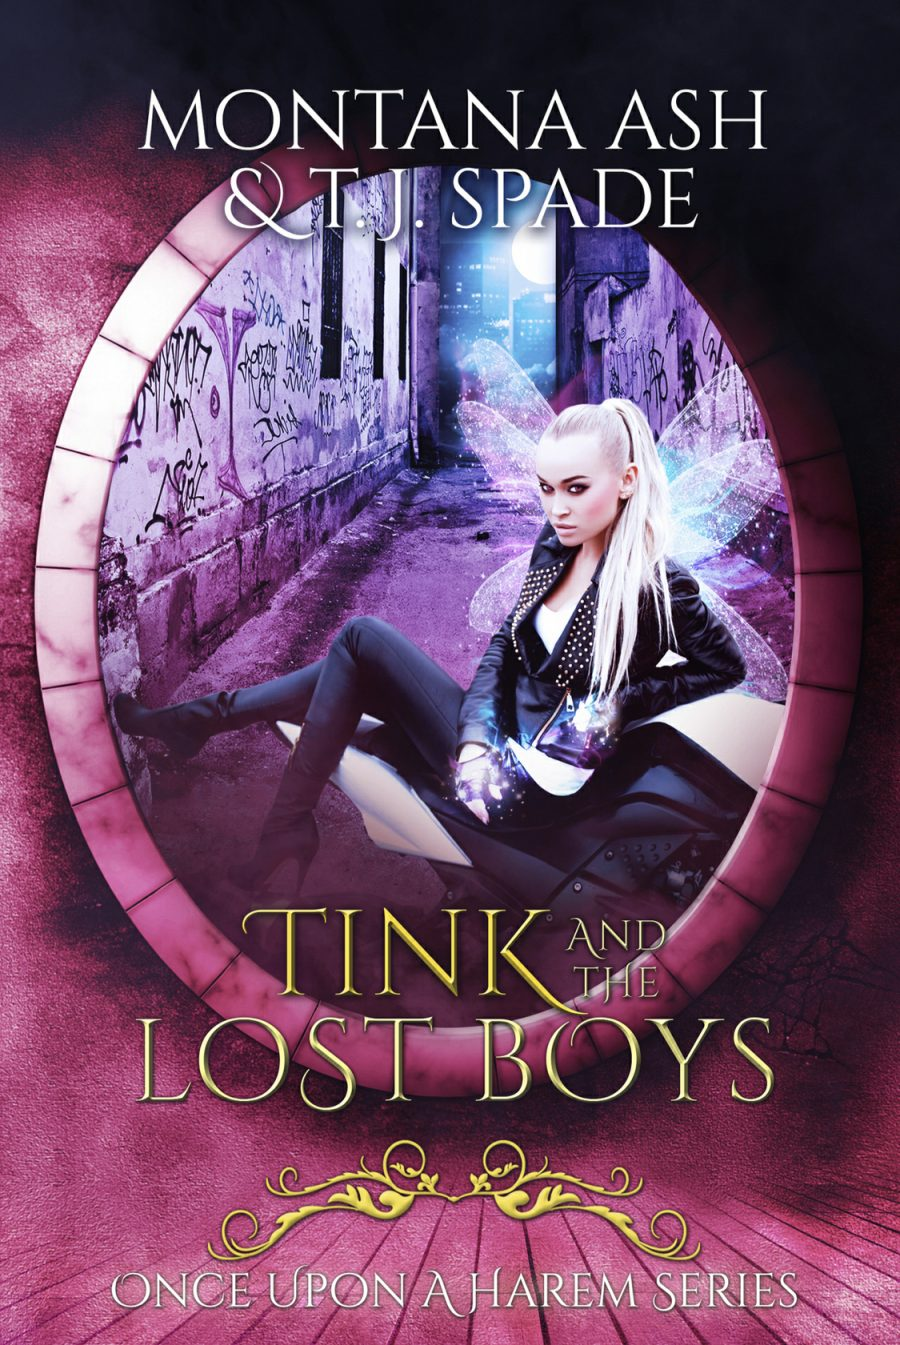 Tink and The Lost Boys by Montana Ash & T.J. Spade - A Book Review #BookReview #WhyChoose #RH #ReverseHarem #FairyTale #HEA #StandAlone #FastBurn